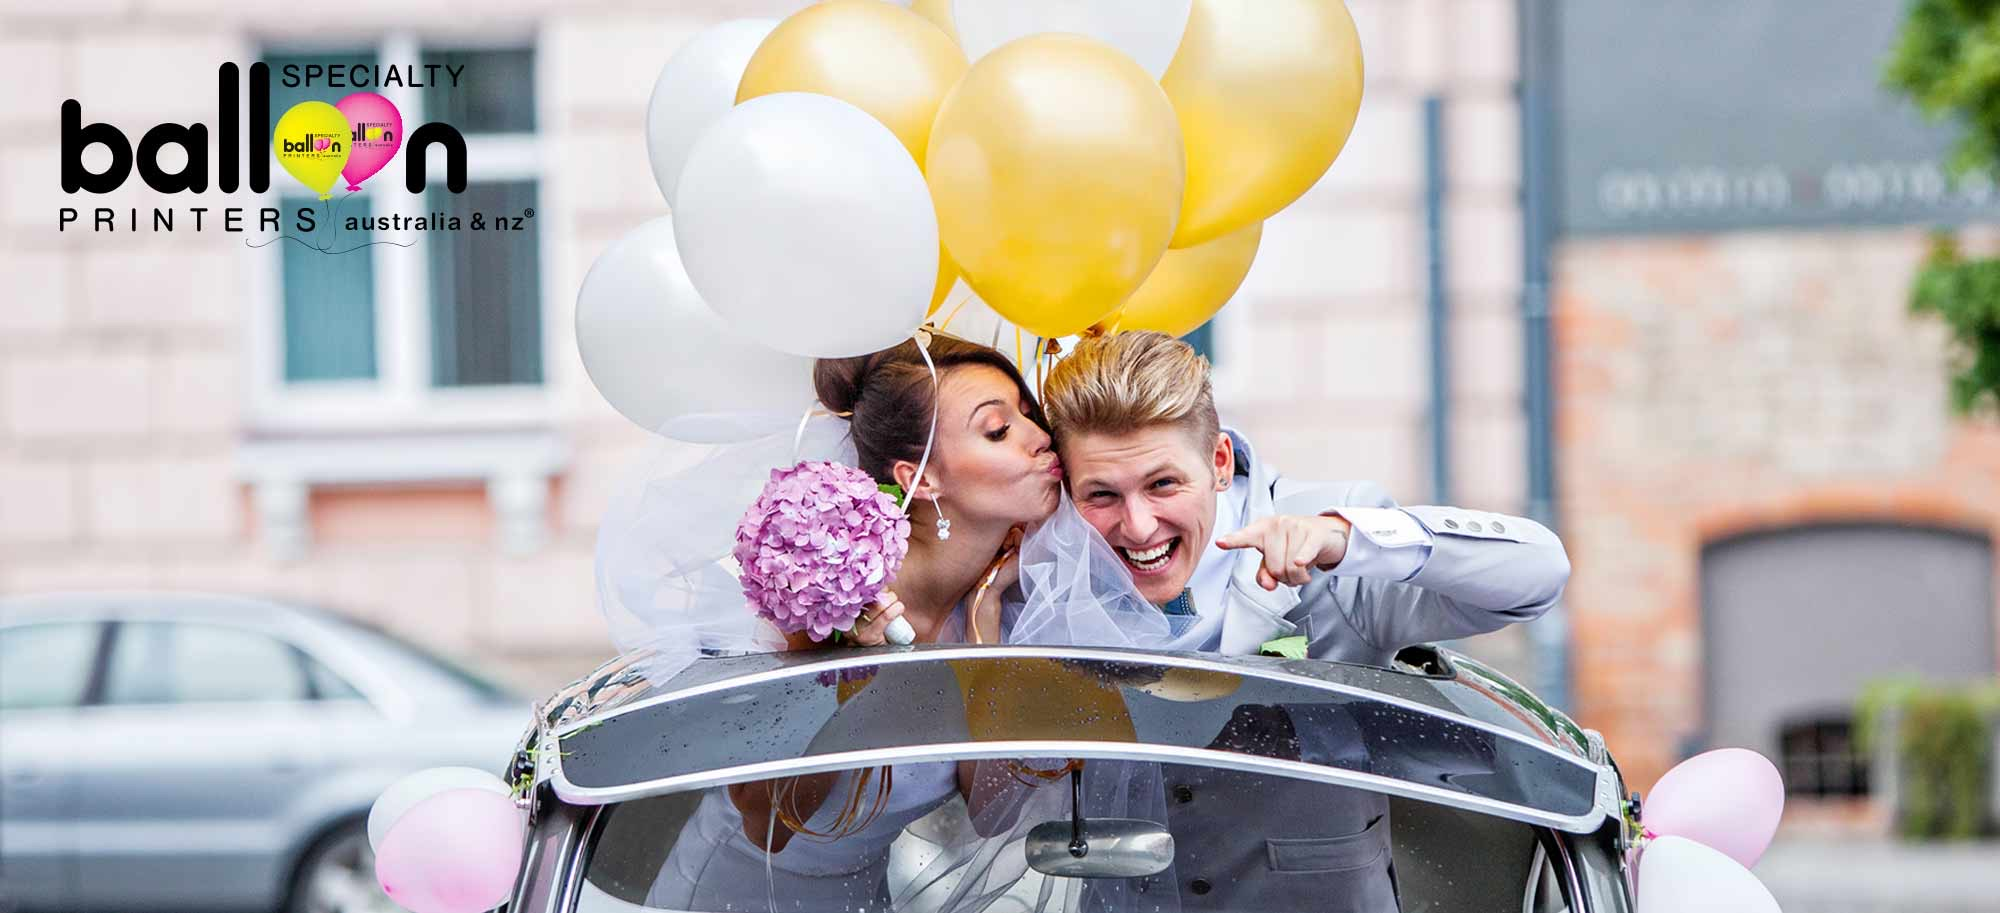 Specialty Balloon Printers 7 Unique Ways To Use Balloons At Your Wedding